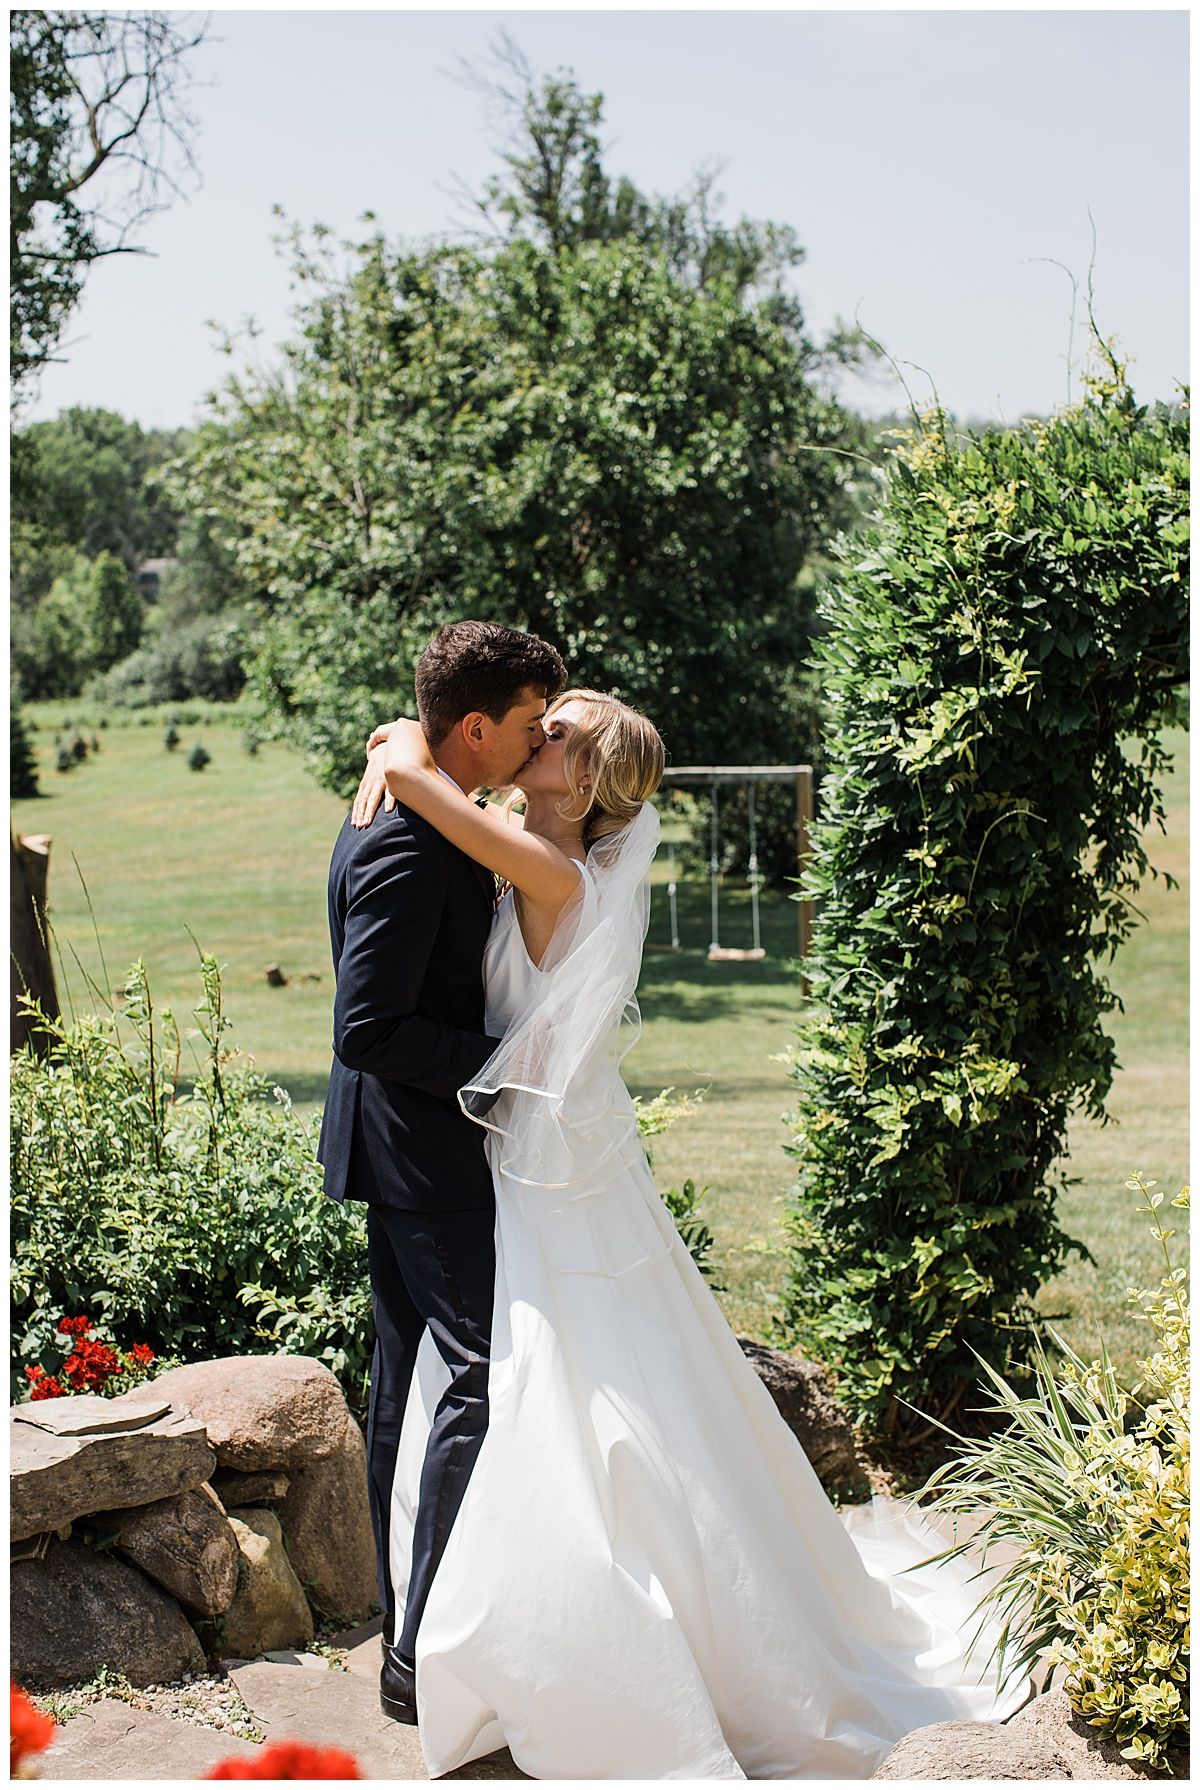 Kiss after first look| Ontario wedding| Ontario wedding photographer| Toronto wedding photographer| 3photography